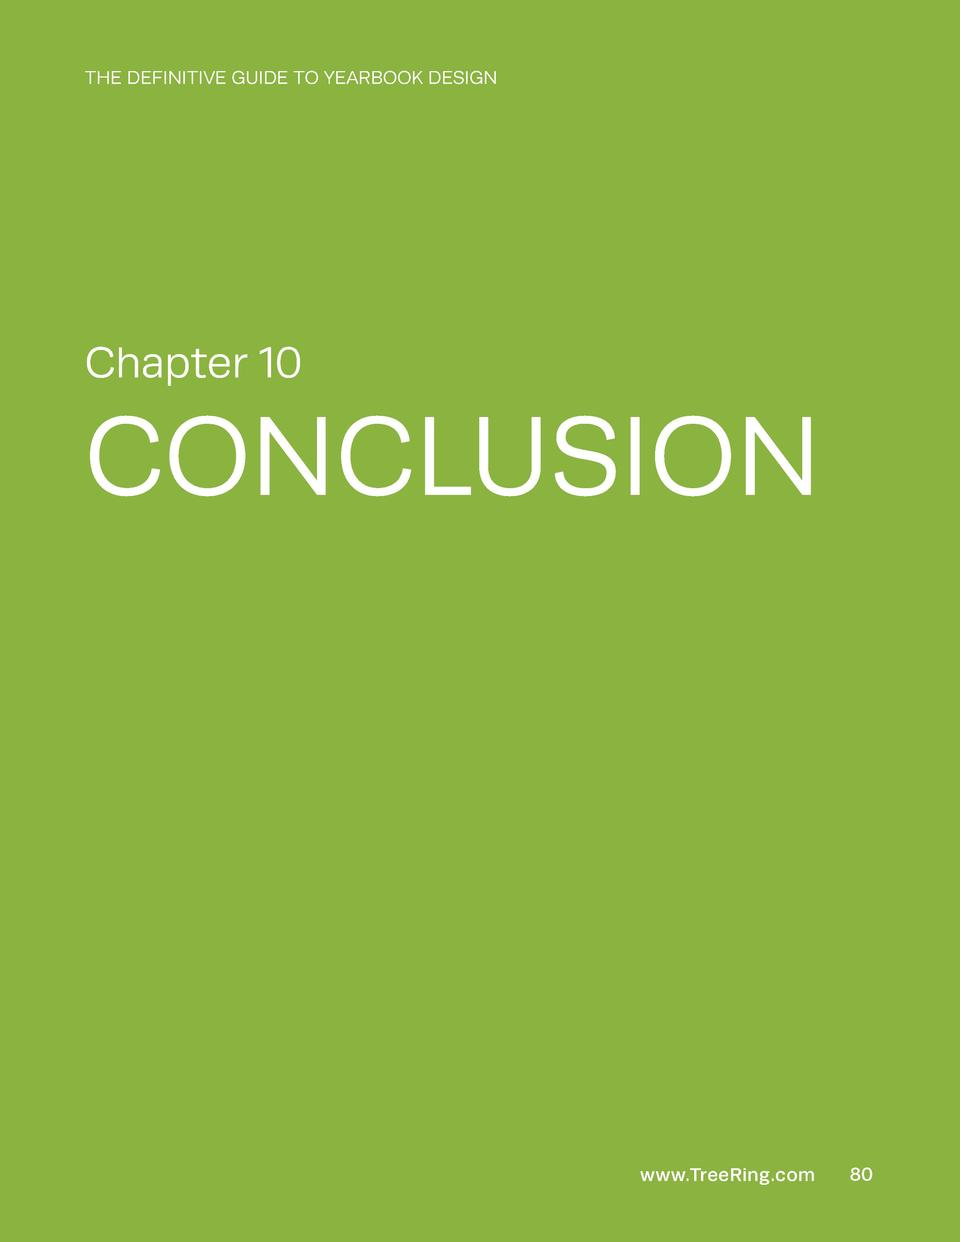 THE DEFINITIVE GUIDE TO YEARBOOK DESIGN  Chapter 10  CONCLUSION  www.TreeRing.com  80